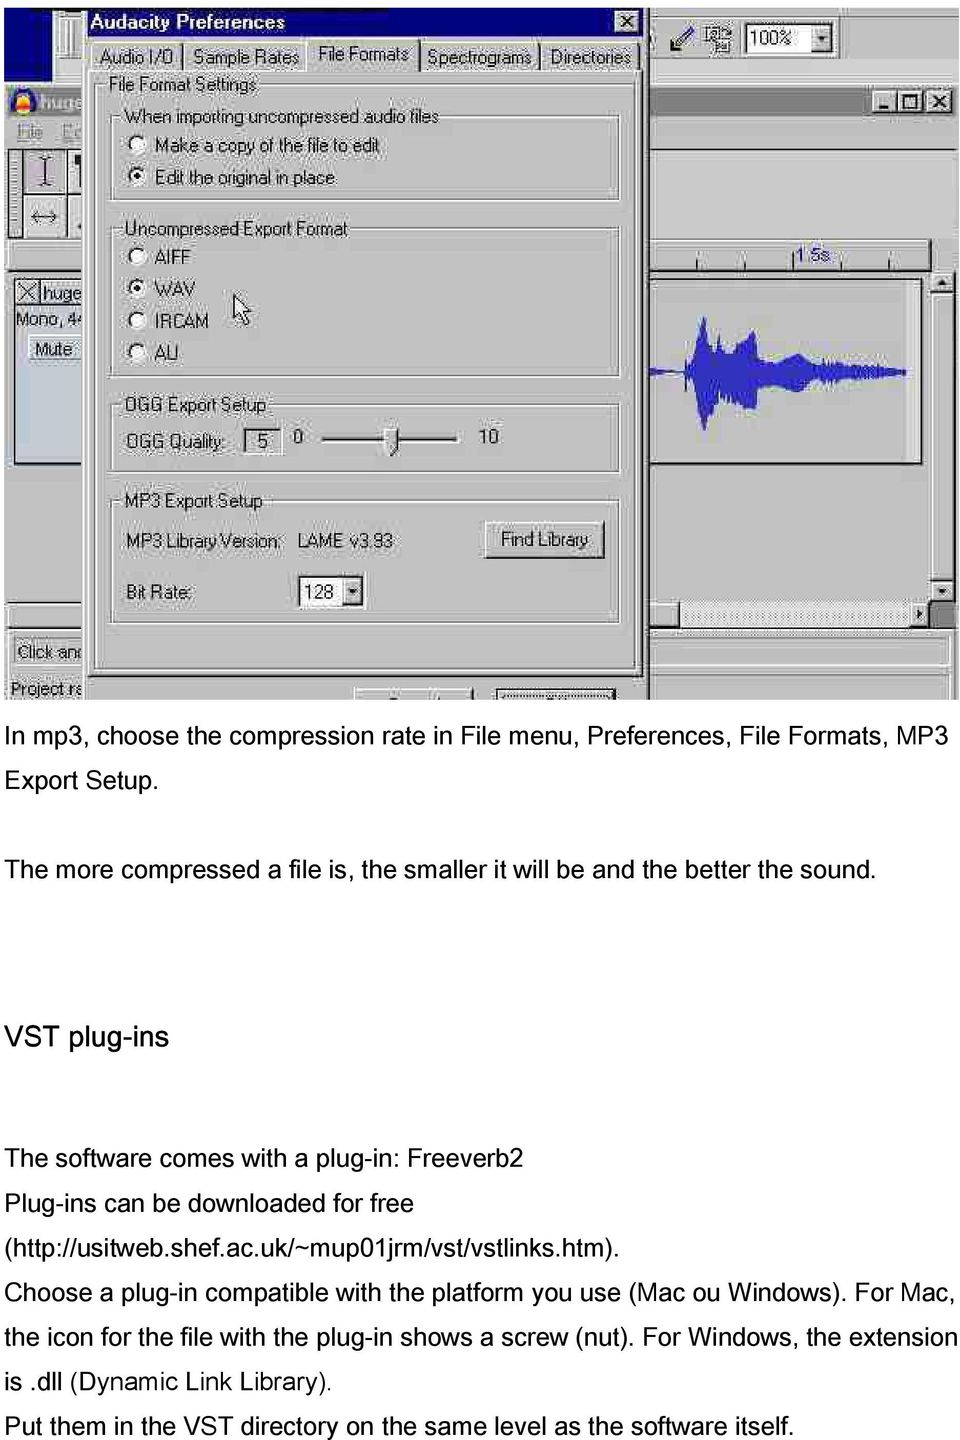 Detailed user guide for Audacity - PDF